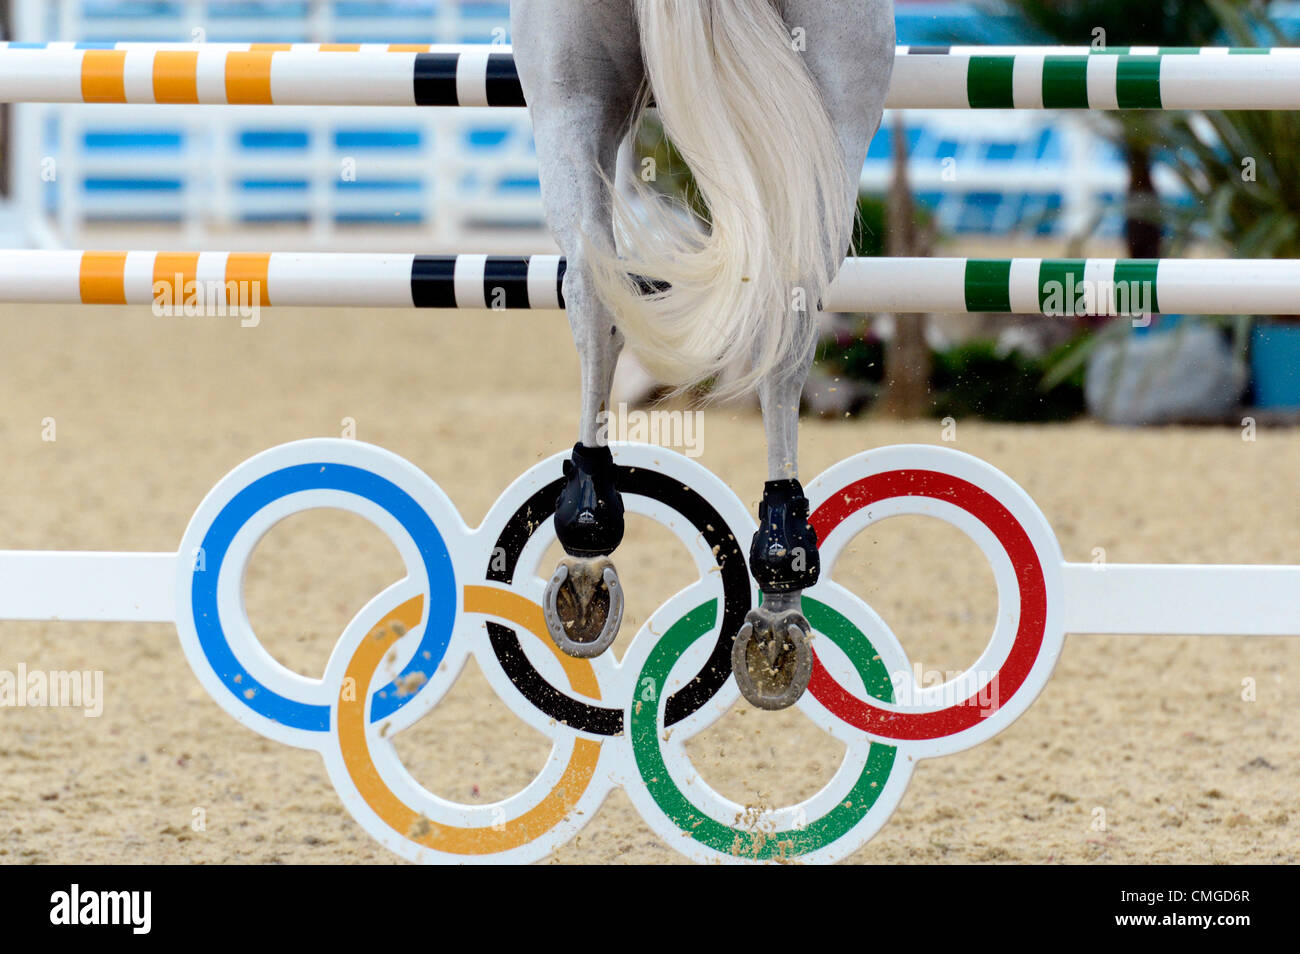 London, UK. 6th August, 2012. Greenwich Park. Olympic Equestrian Team Showjumping - Stock Image